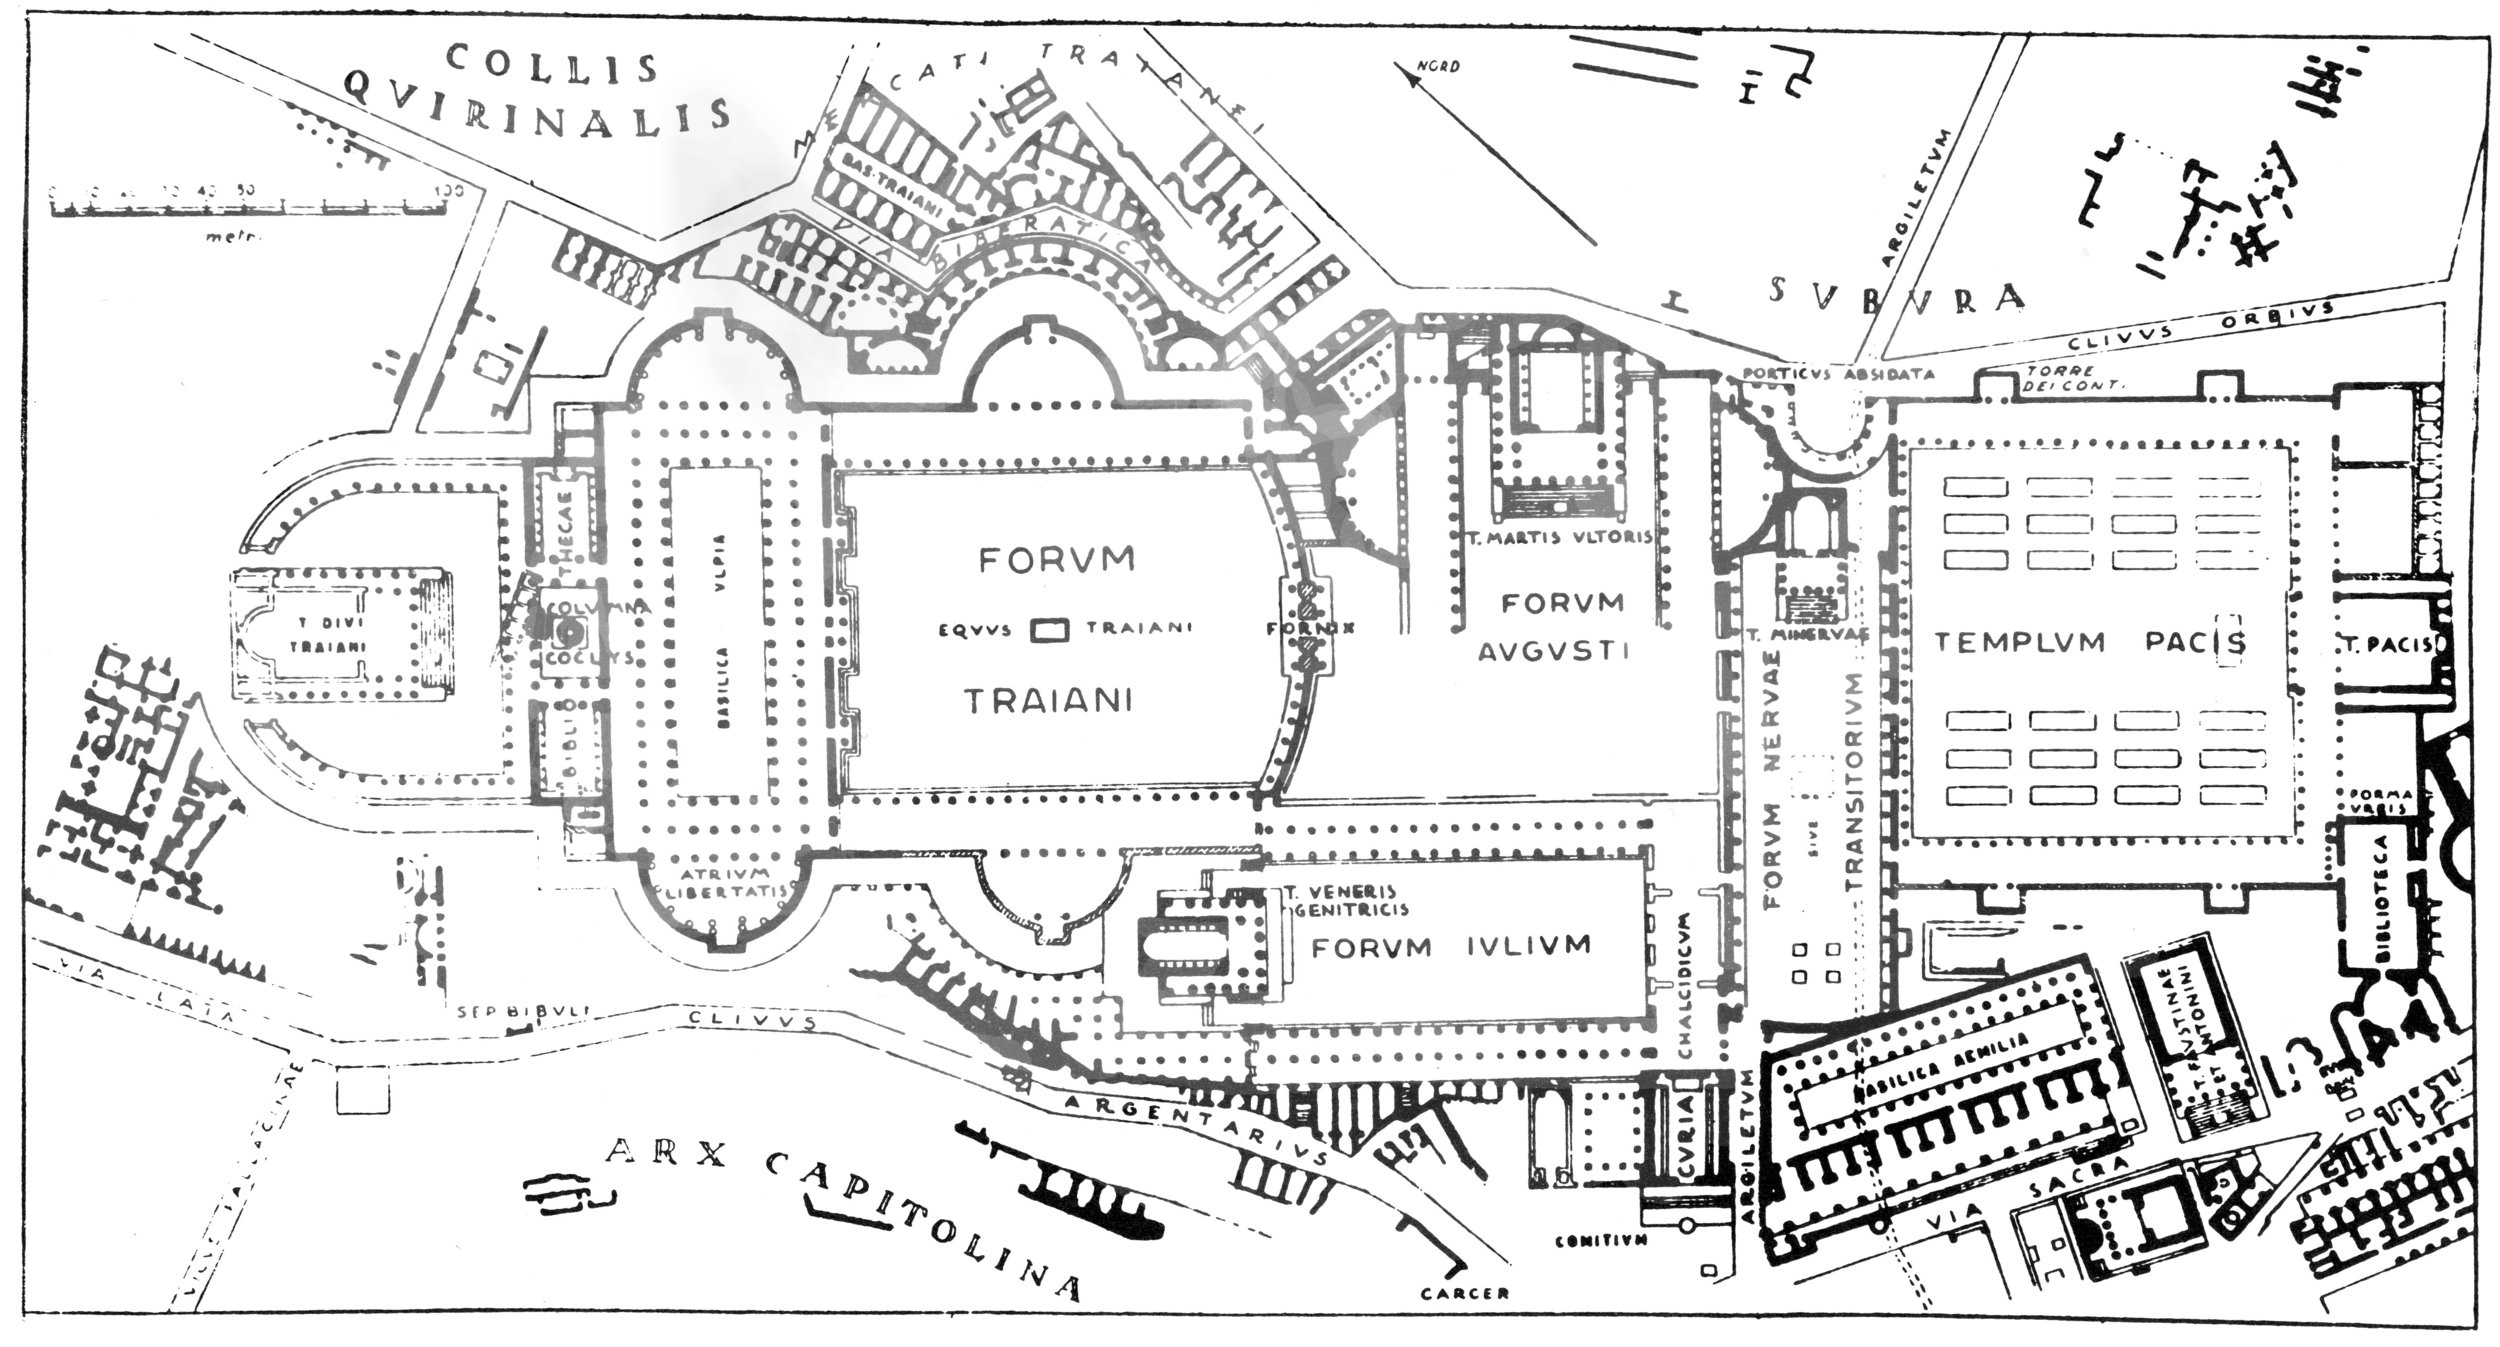 The Roman Forum - Not so unique afterall?  (Ward-Perkins 1974: 108)